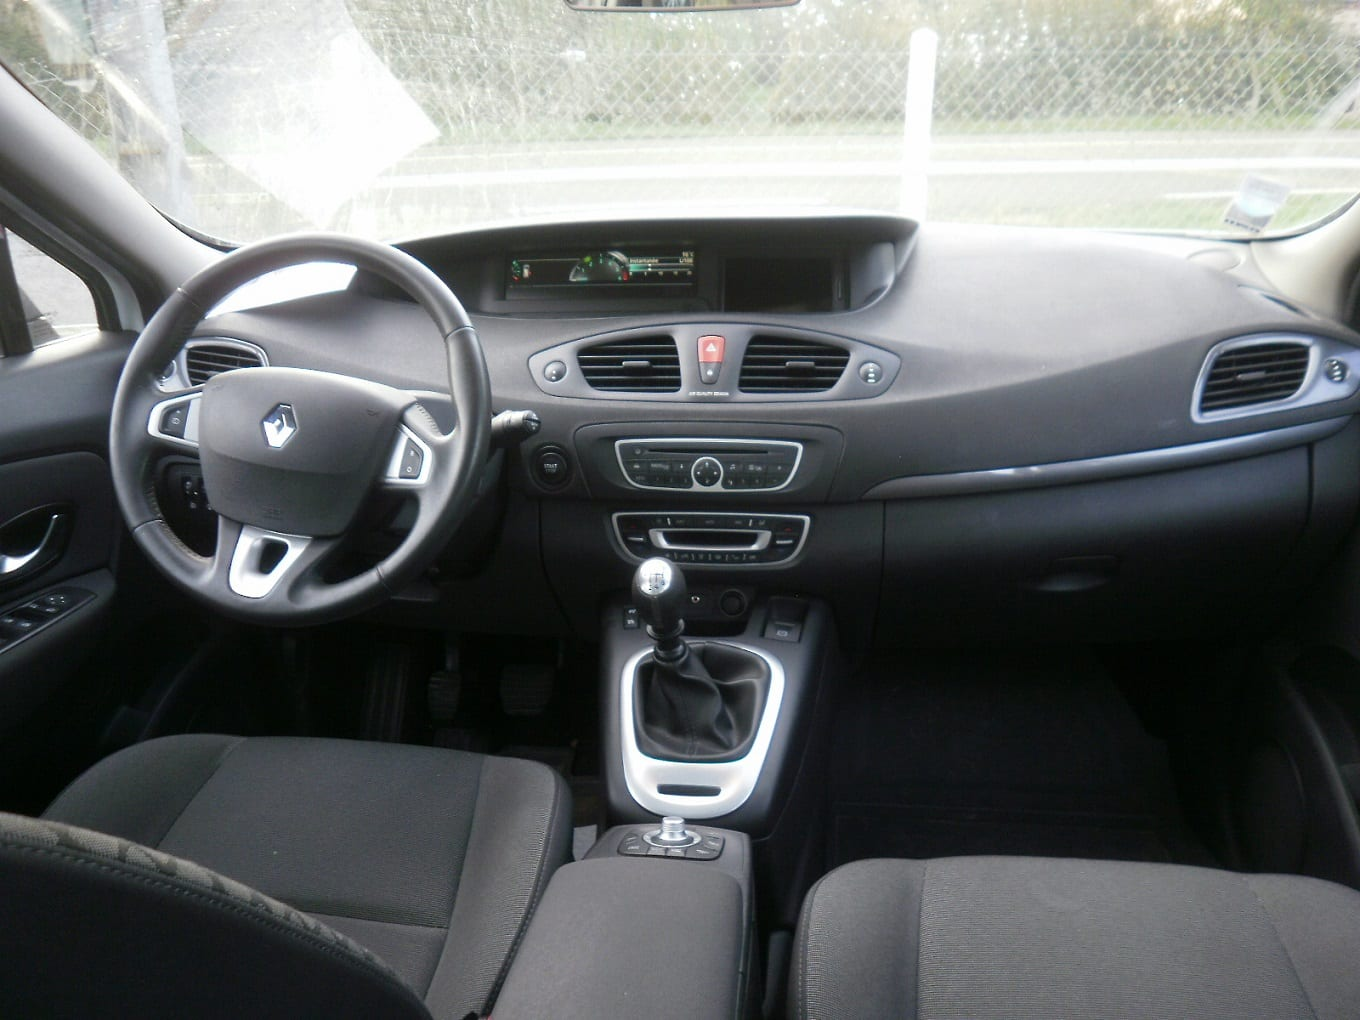 Citroen GRAND C4 1.6 HDI 110 TENDANCE - Image 7